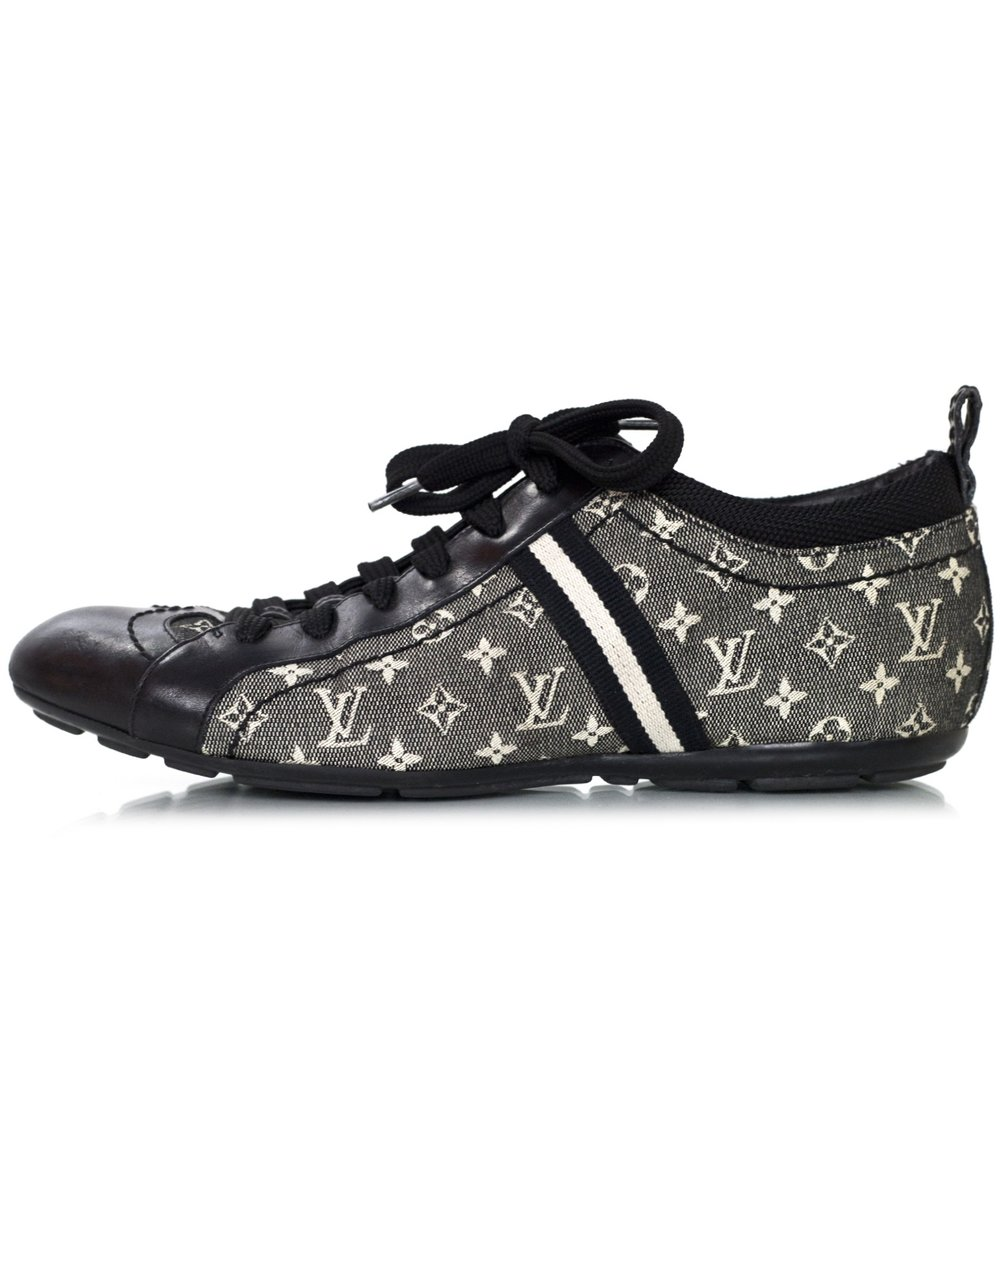 LV black white monogram mini lin tennis shoes 100-11350 5.jpg